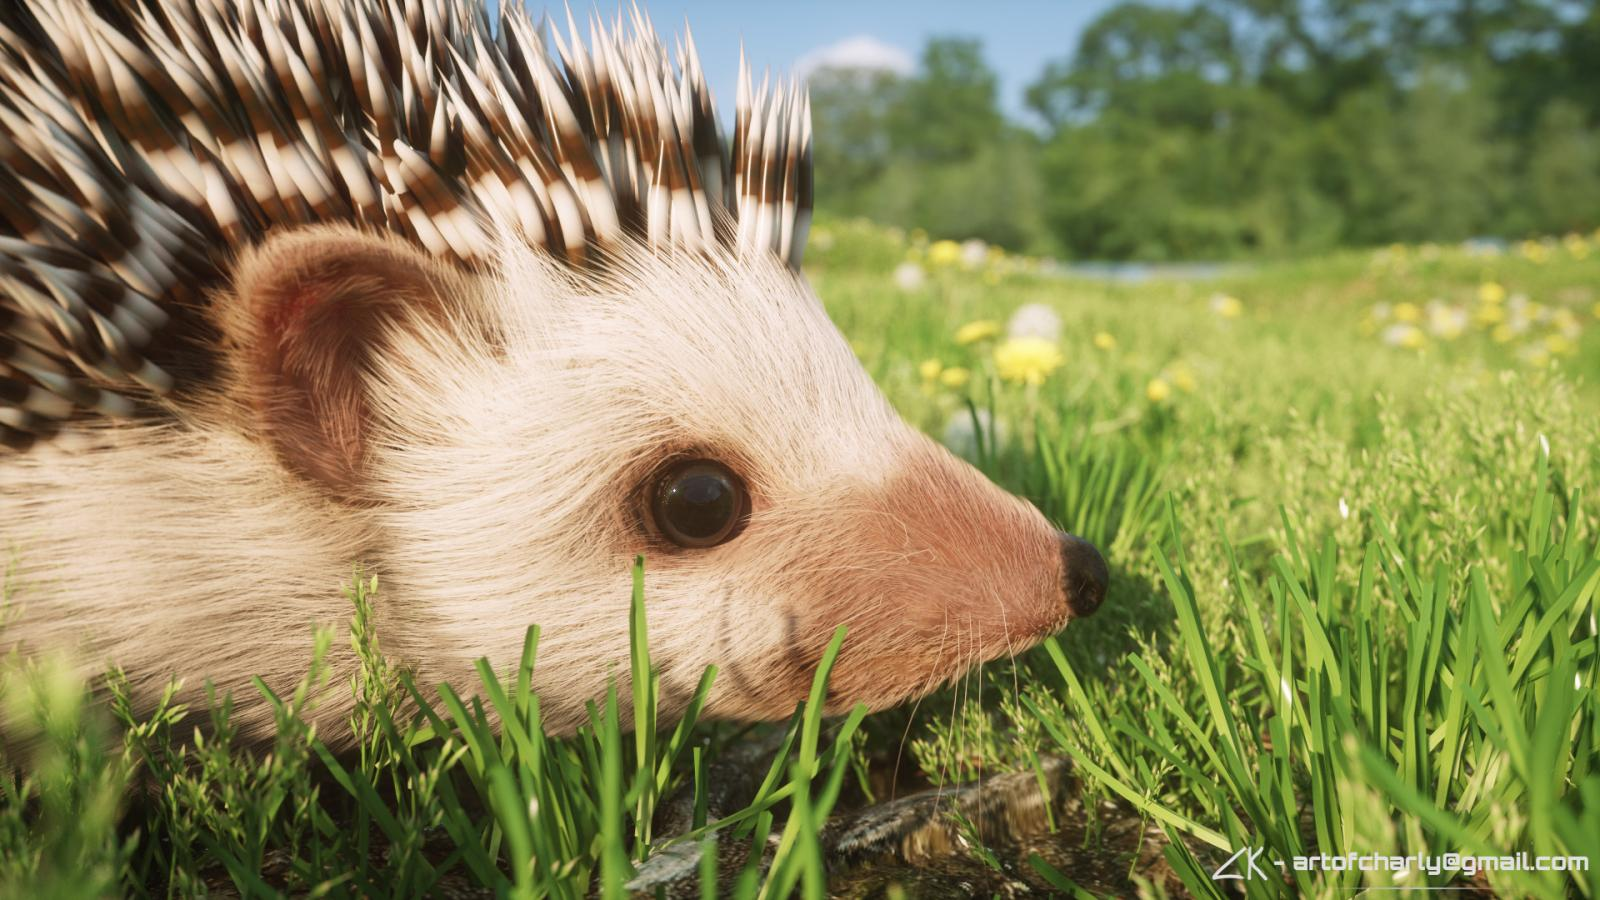 Hedgehog 2017